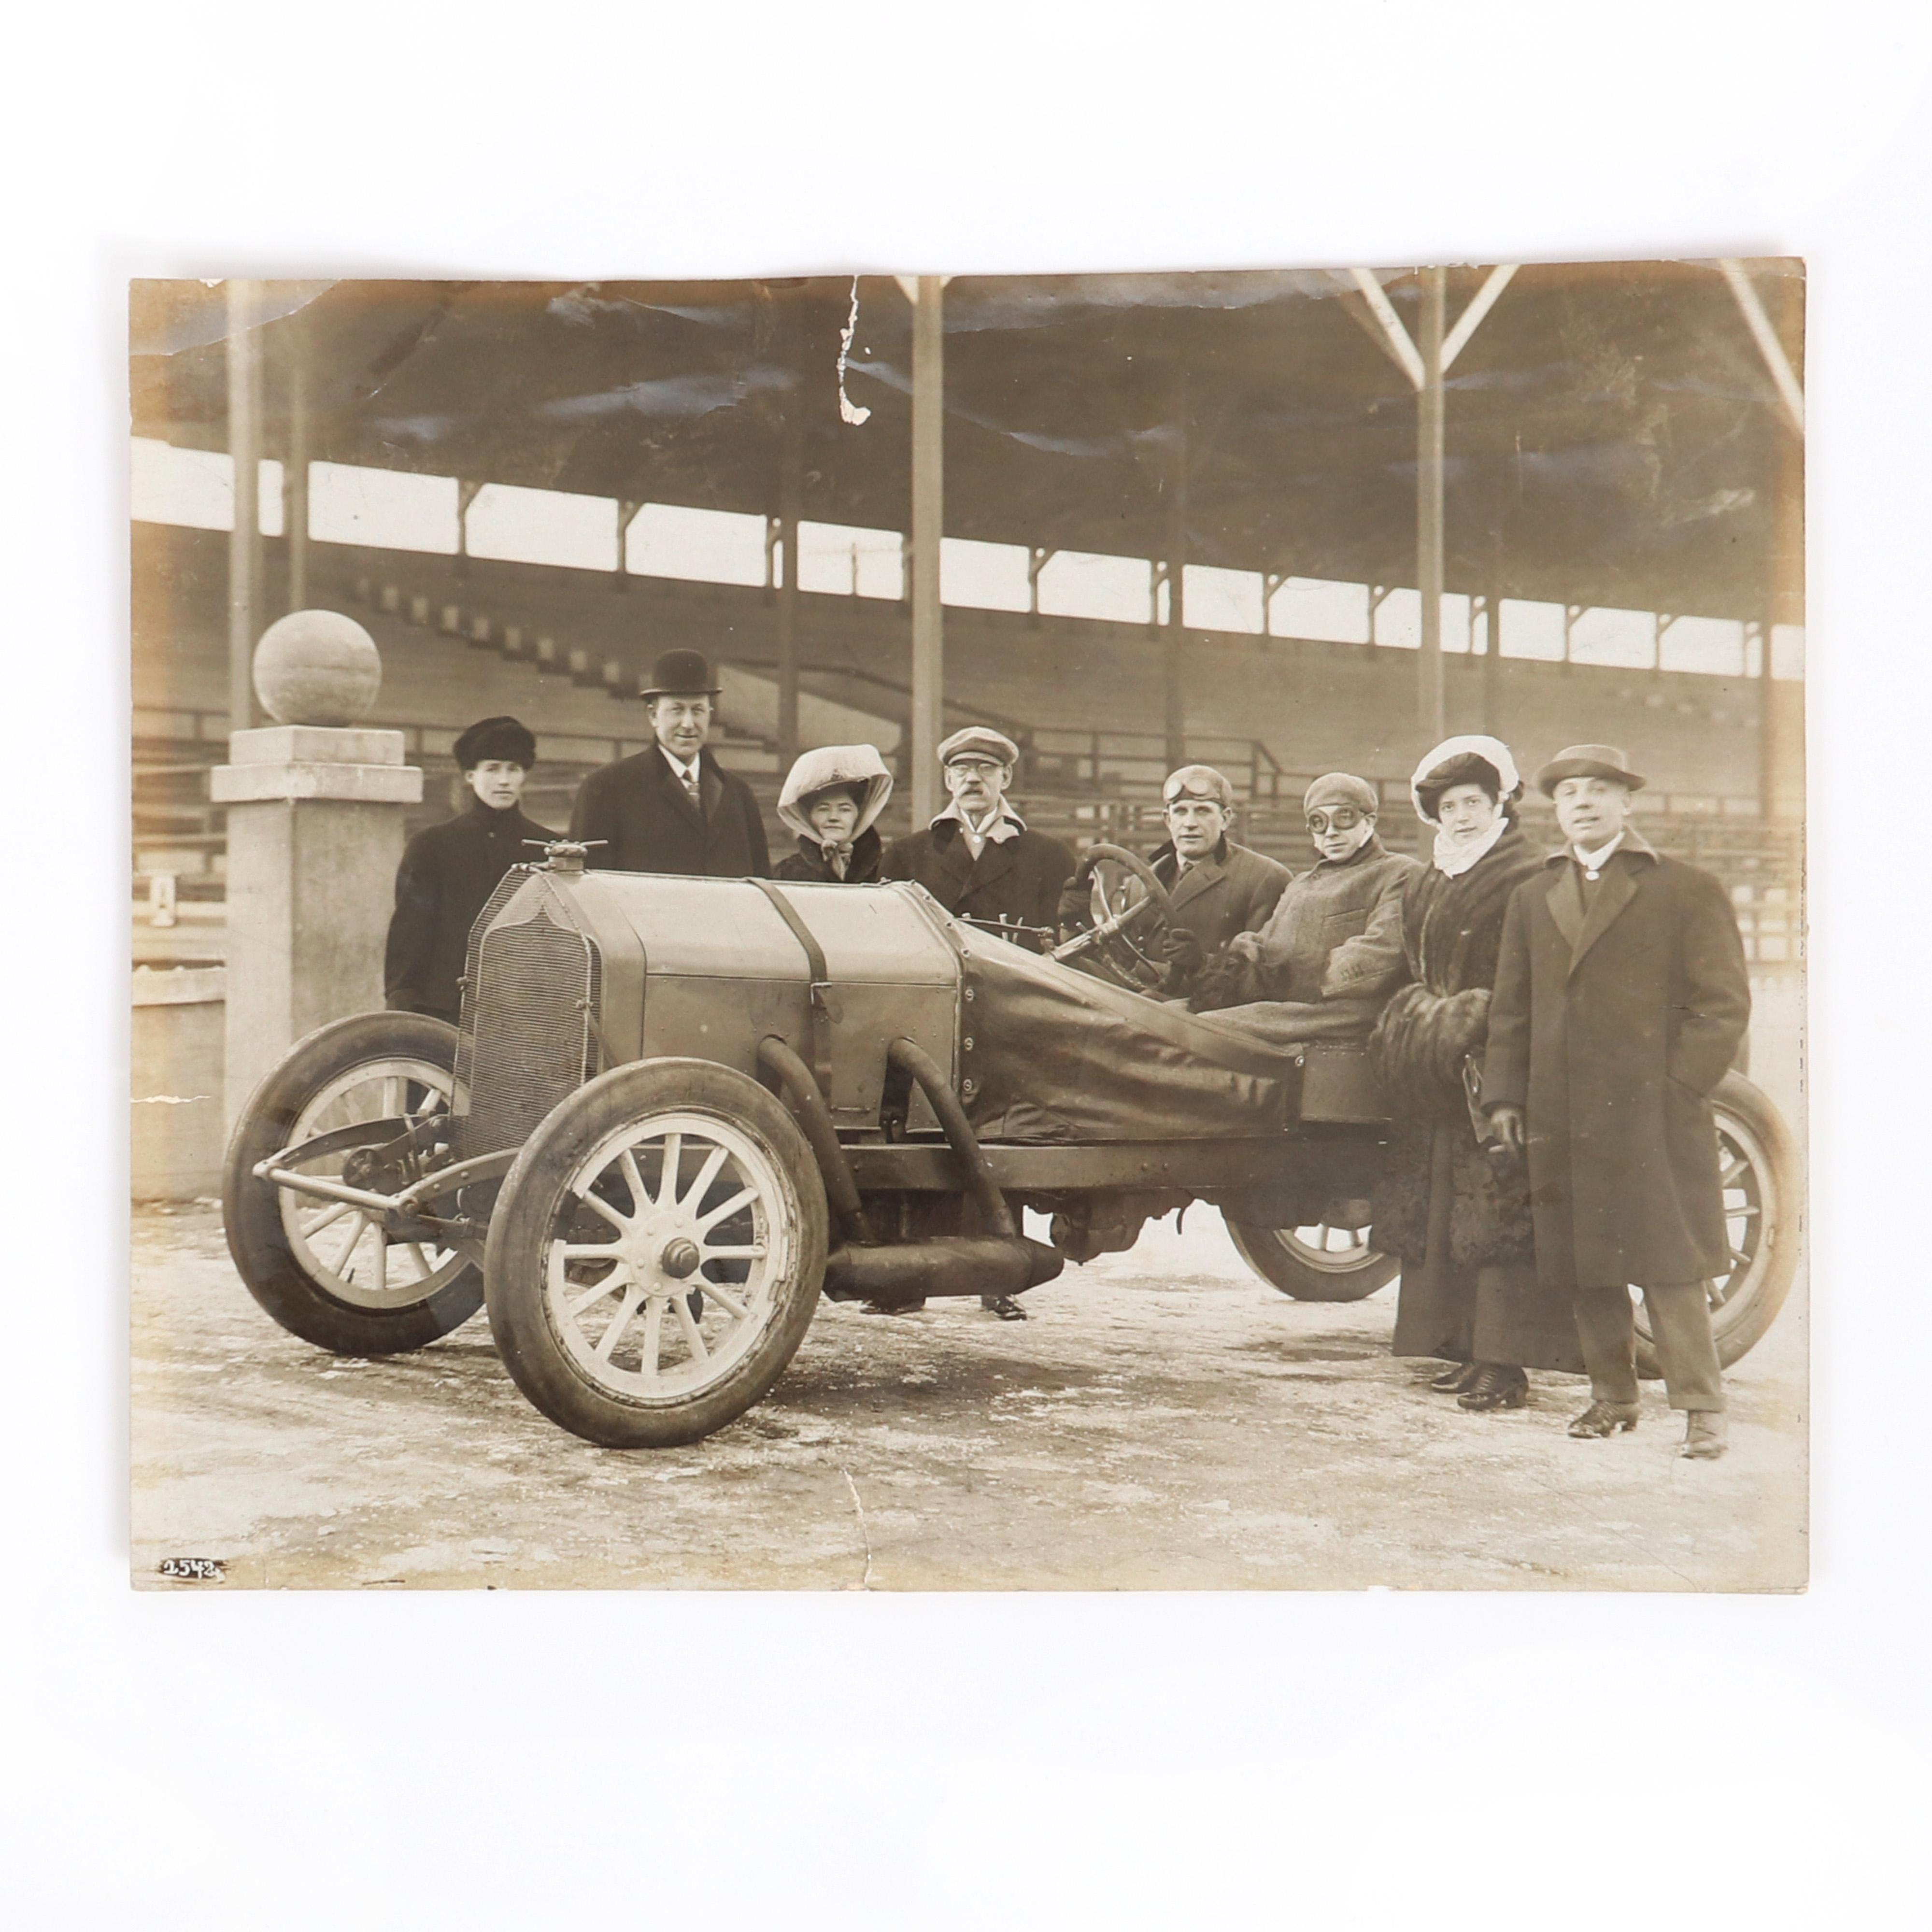 1911 Johnny Aitken Indianapolis Motor Speedway Original Photo 1911 Johnny Aitken Indianapolis Motor Speedway Original Photo.